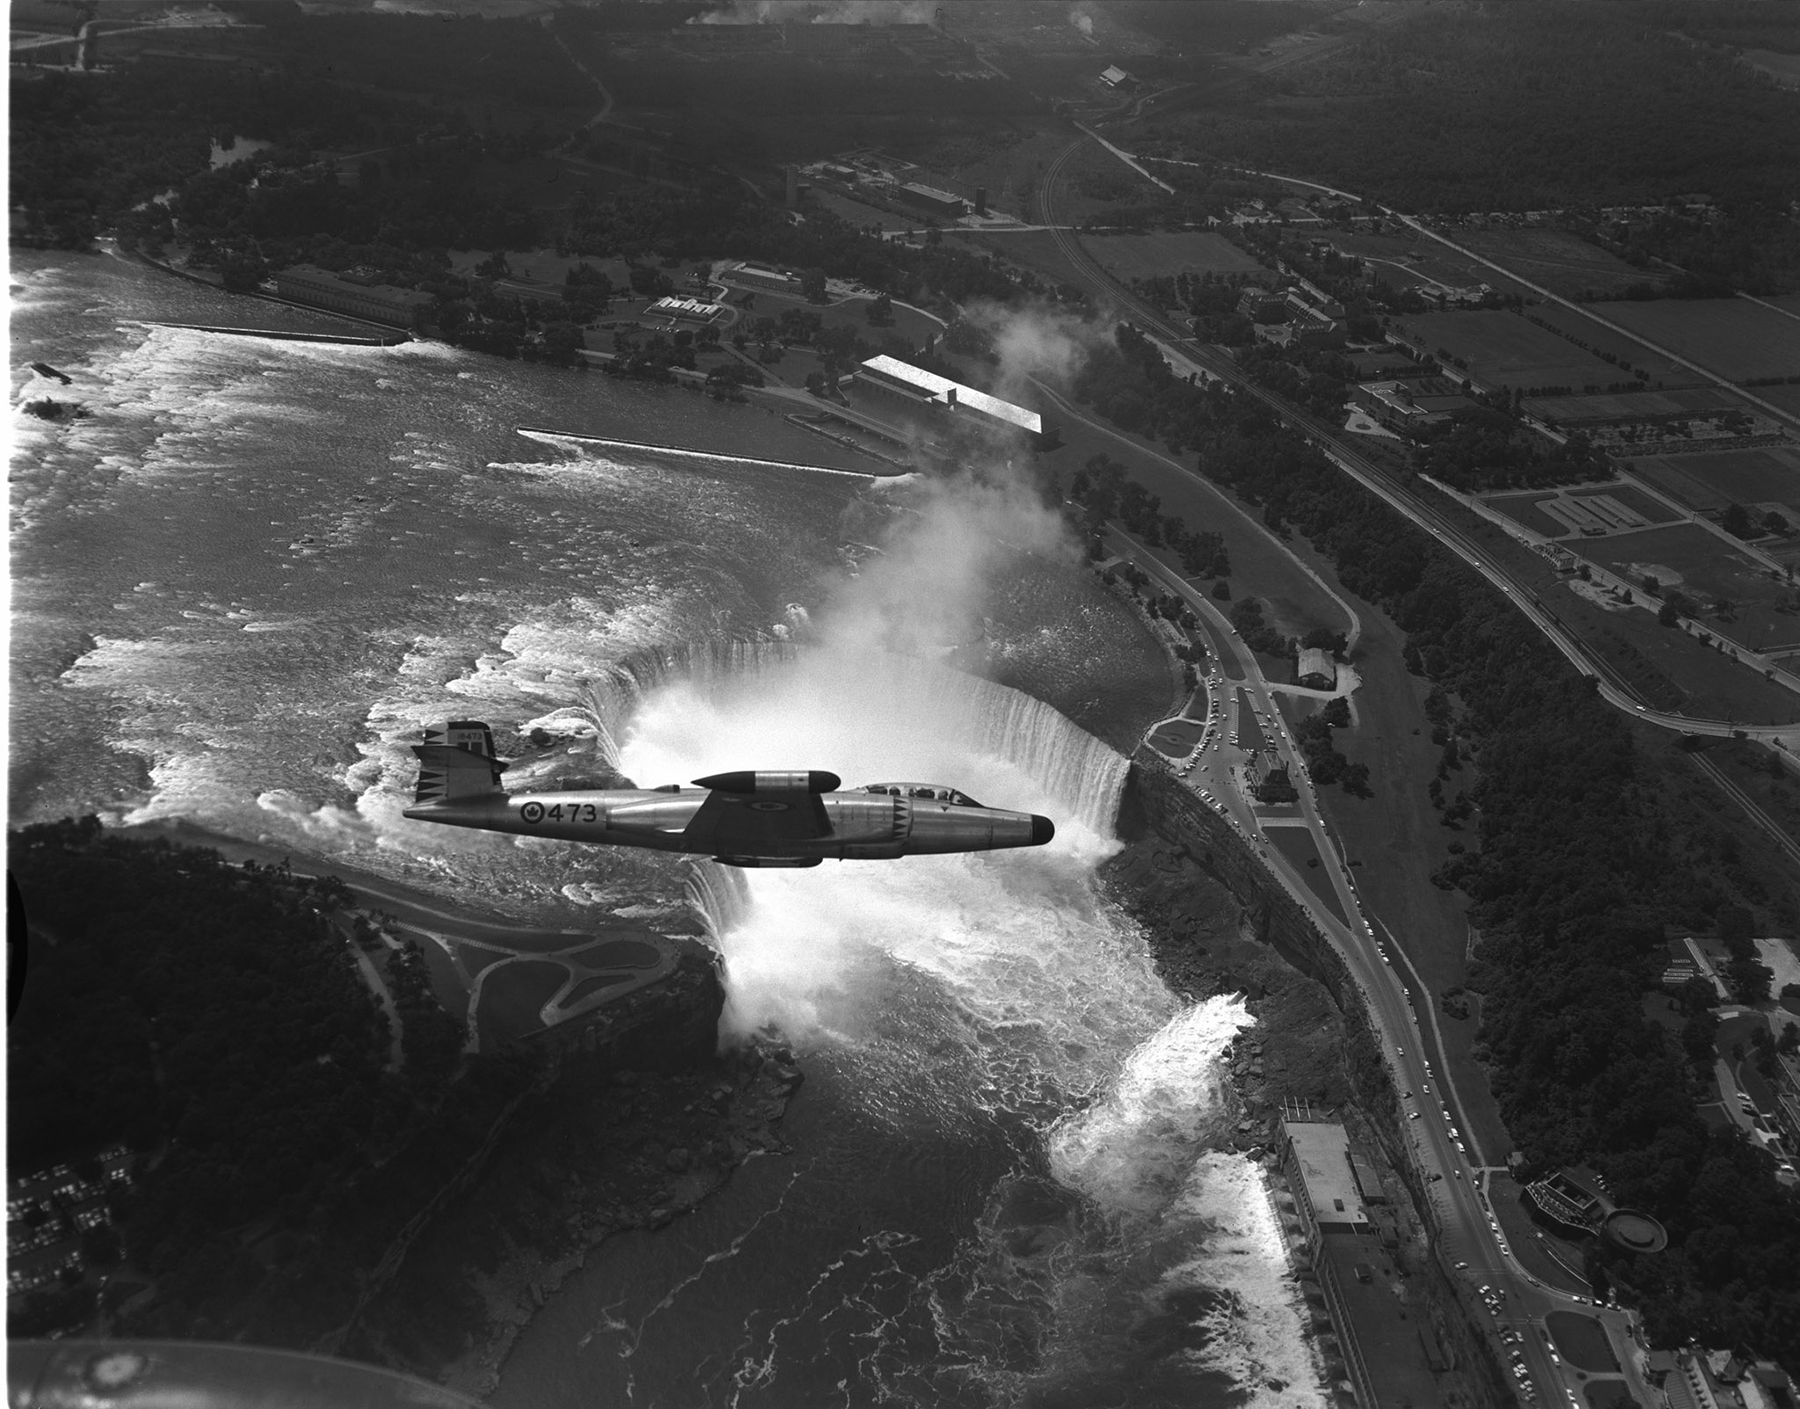 La photo non datée ci-dessus montre un avion CF-100 Canuck du 423e Escadron survolant les chutes Horseshoe, à Niagara Falls, en Ontario. PHOTO : Archives du MDN, PL-95055